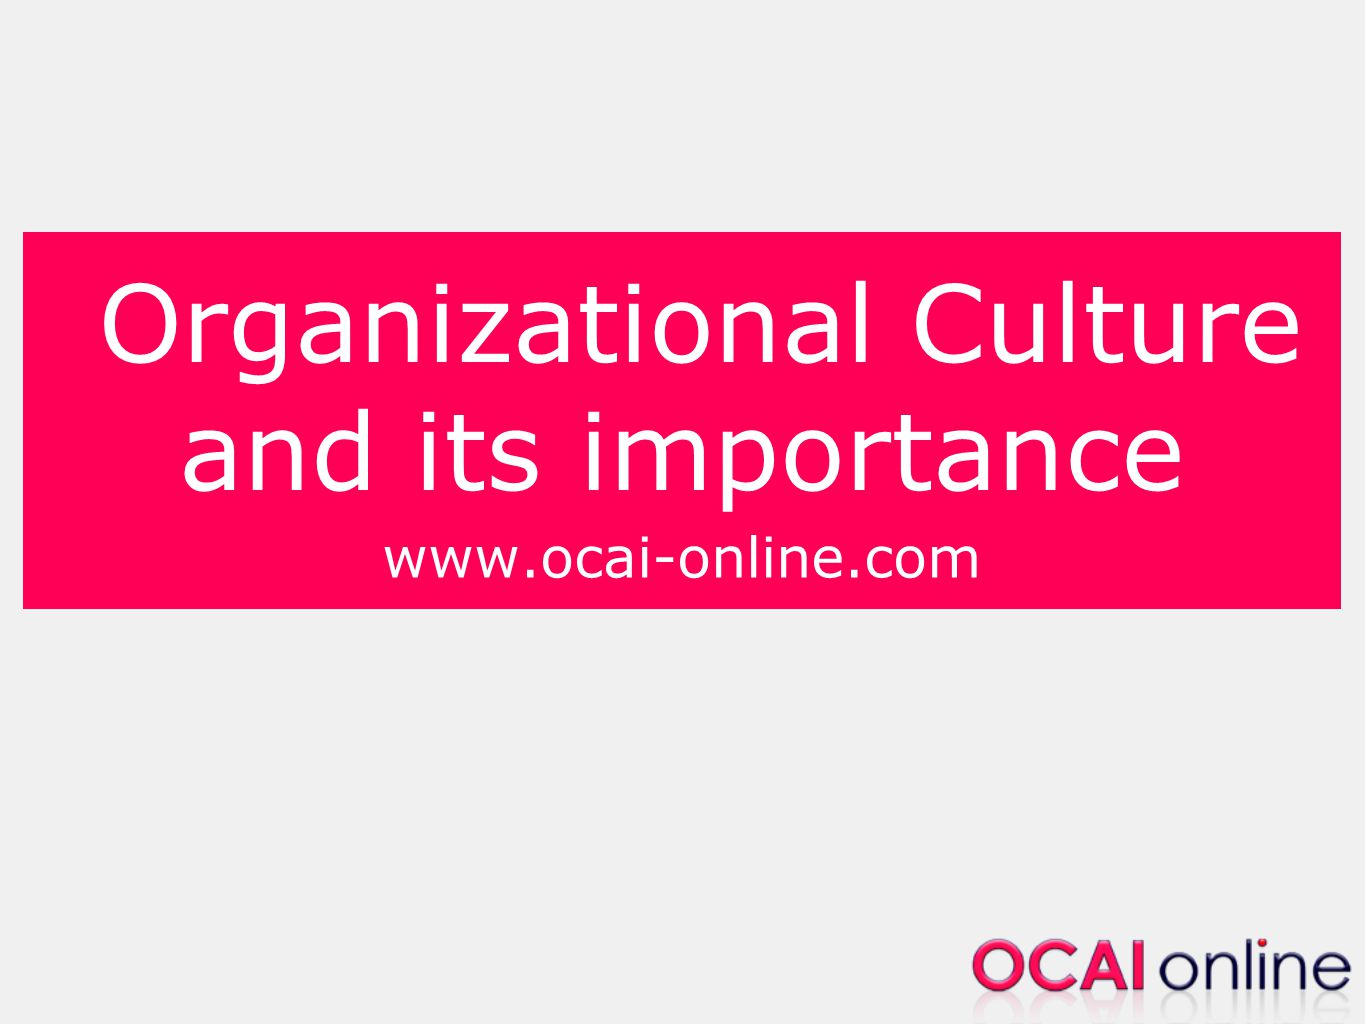 Organizational Culture and its importance